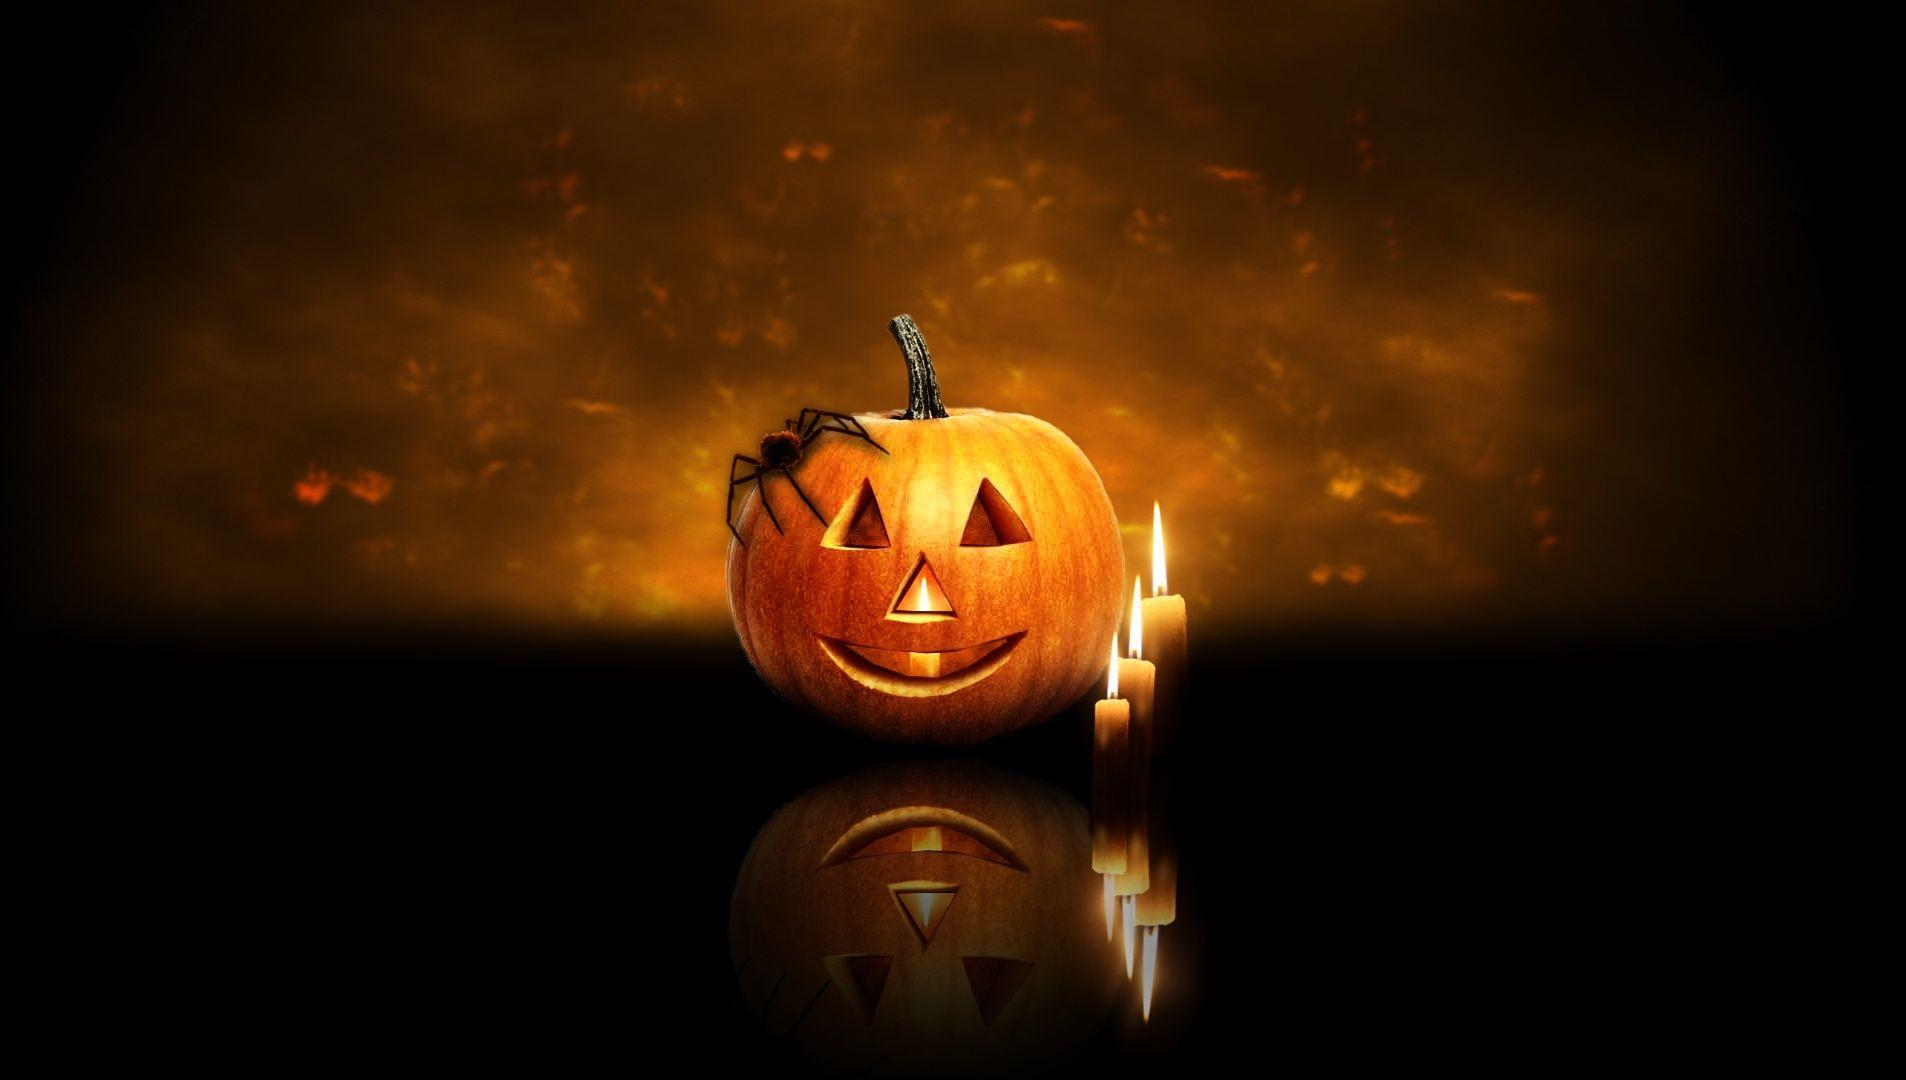 Free Fall Wallpaper Downloads Halloween Pumpkin Backgrounds Wallpaper Cave